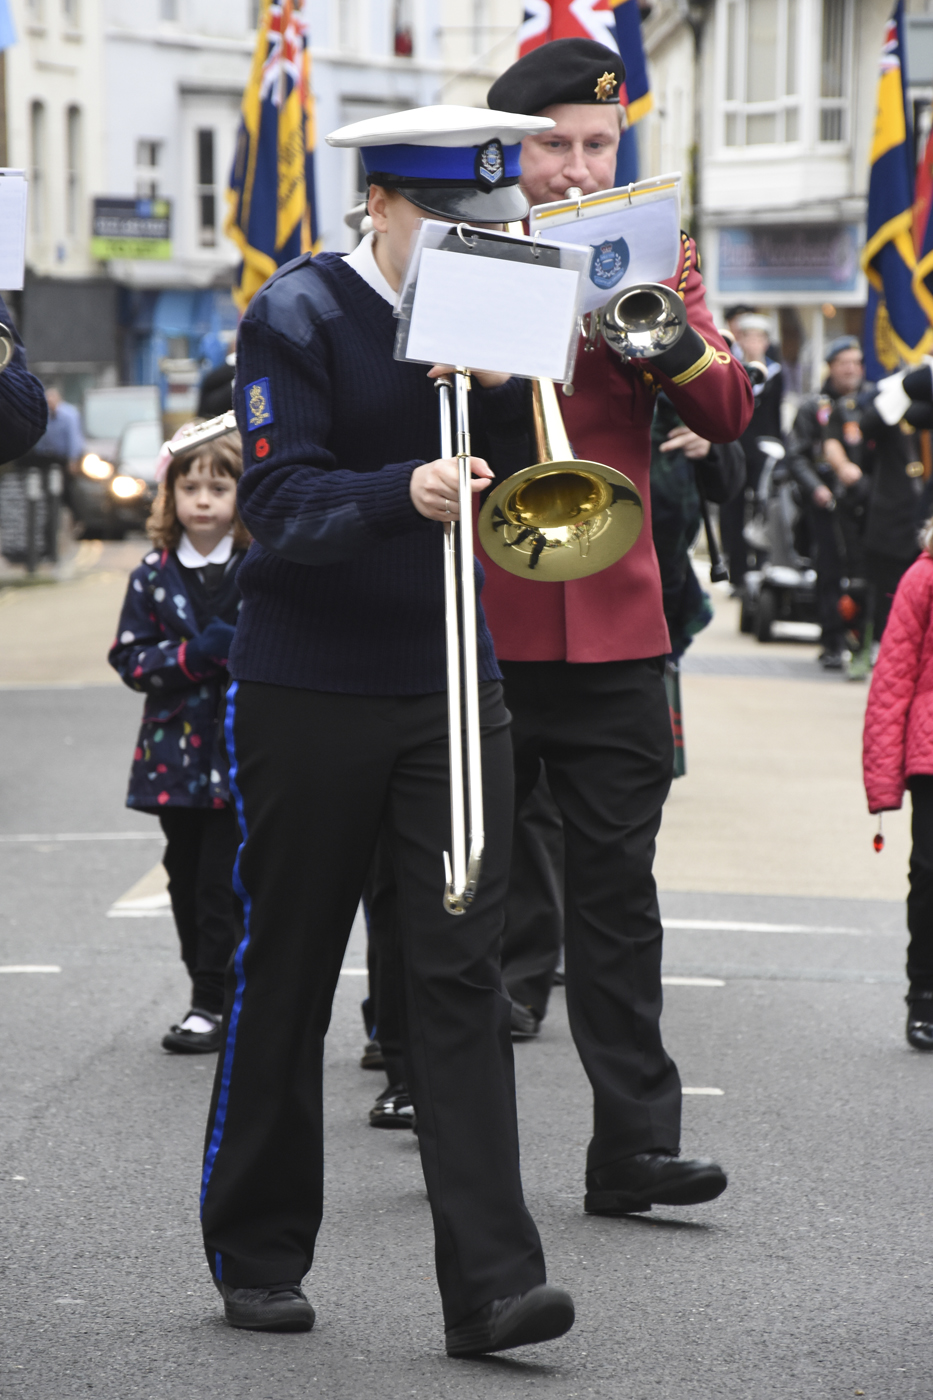 20161029_stp_3496-hss-launch-of-the-poppy-appeal-2016-in-ventnor